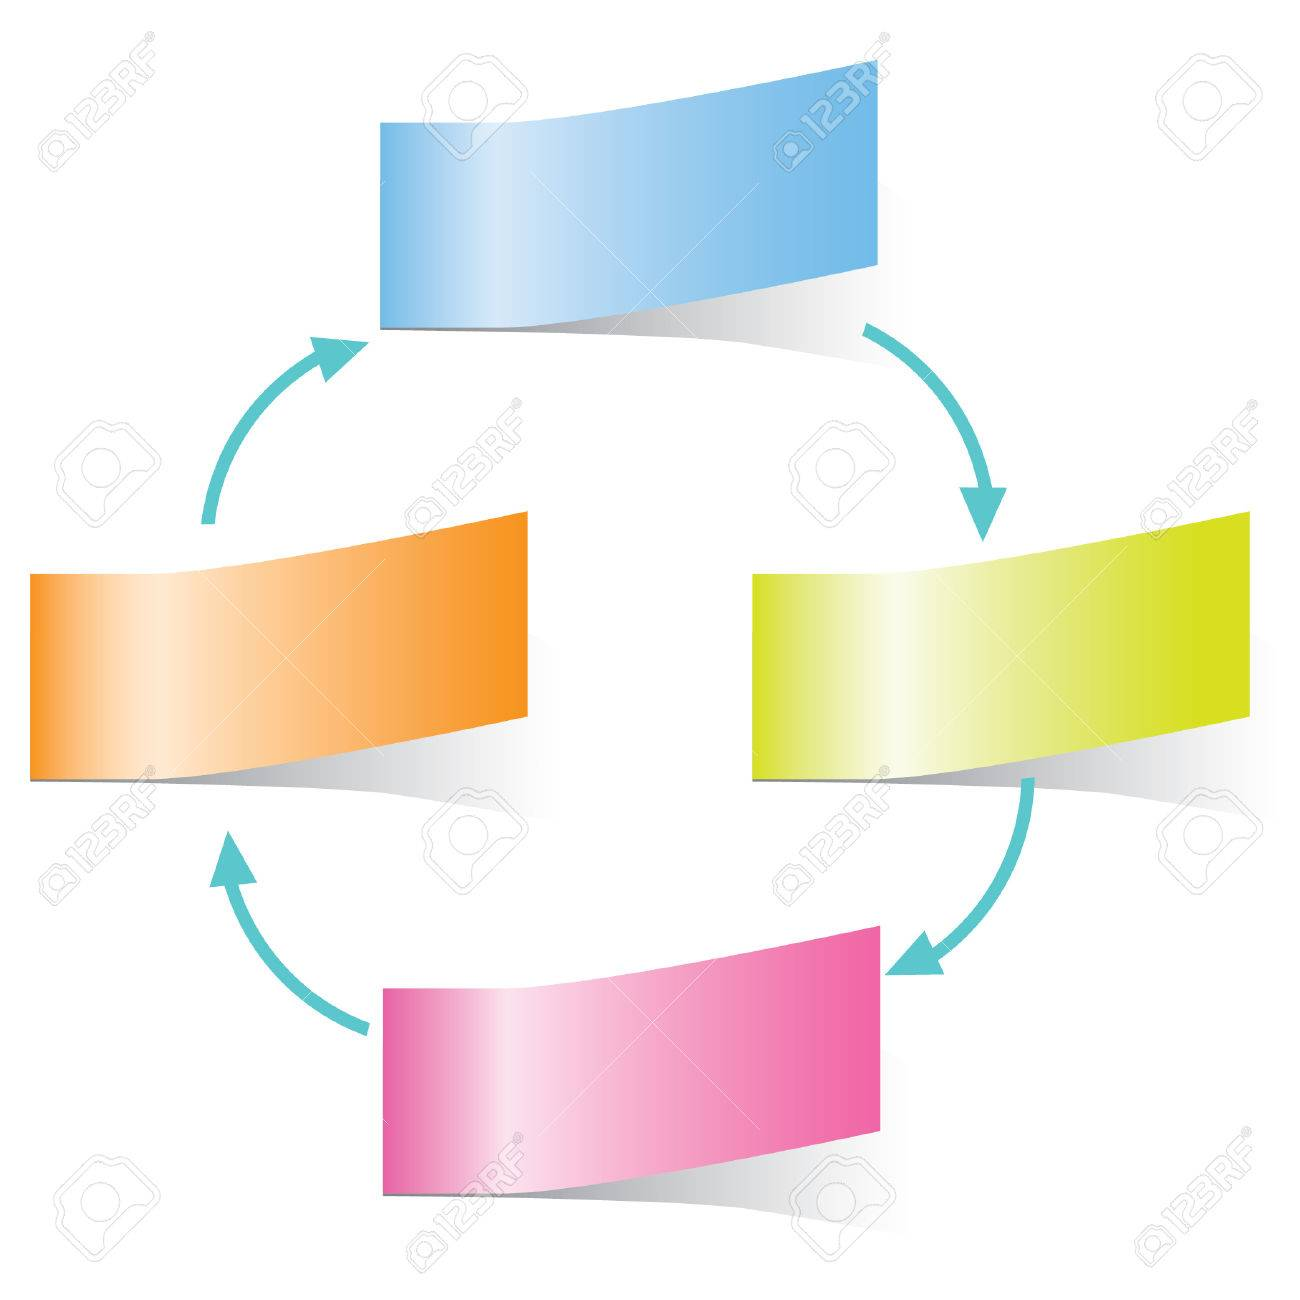 Sticky Note Diagram Template Royalty Free Cliparts Vectors And – Sticky Note Template